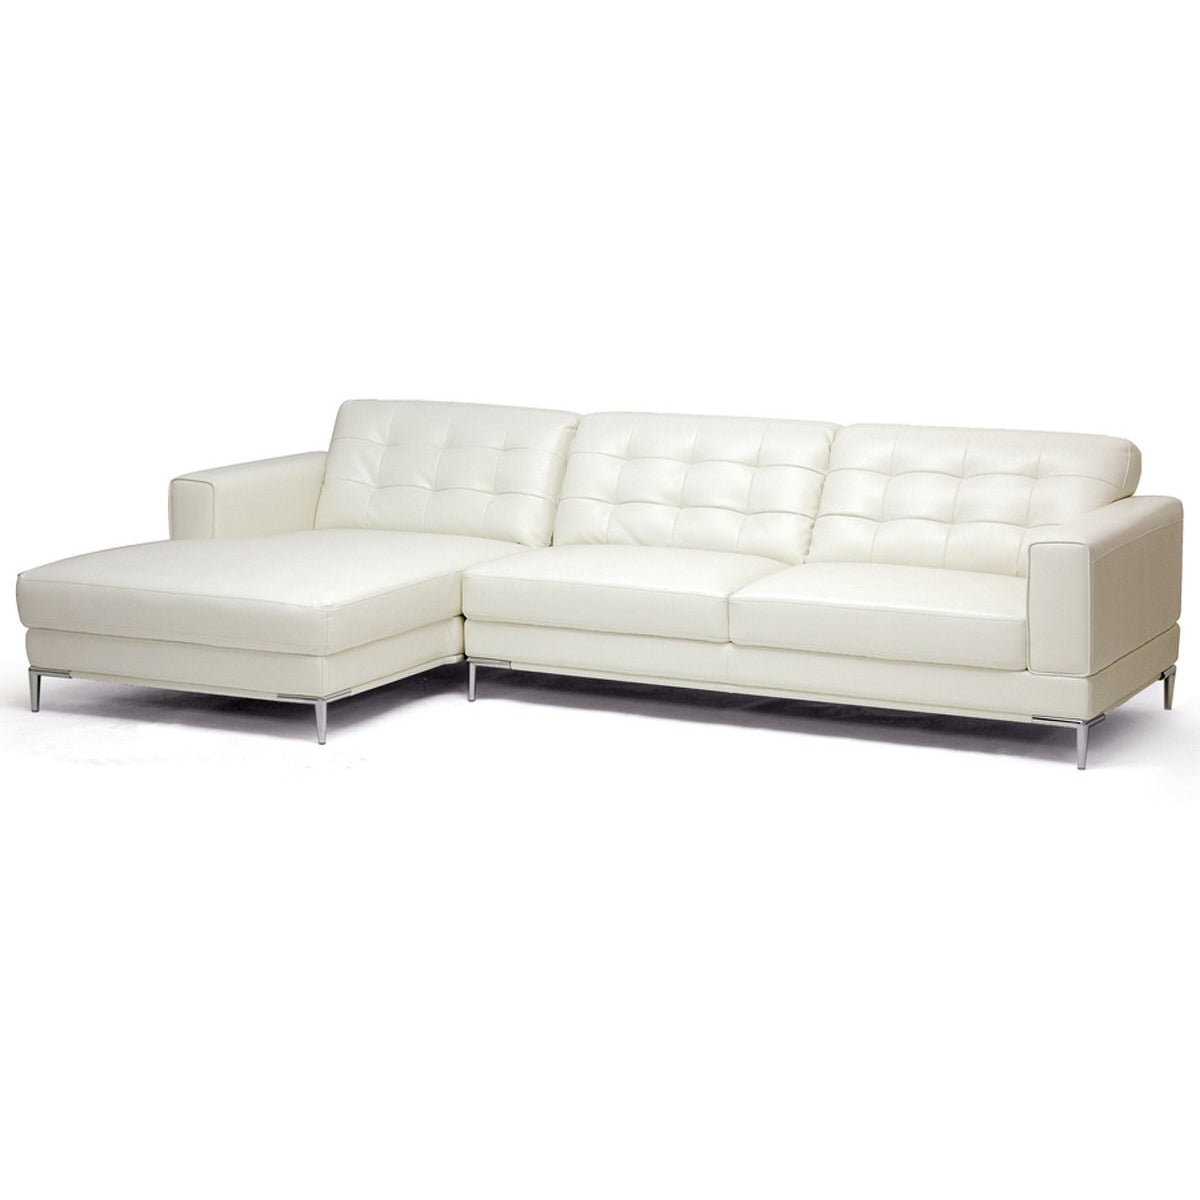 Baxton Studio Babbitt Ivory Leather Modern Sectional Sofa Baxton Studio-sectionals-Minimal And Modern - 1